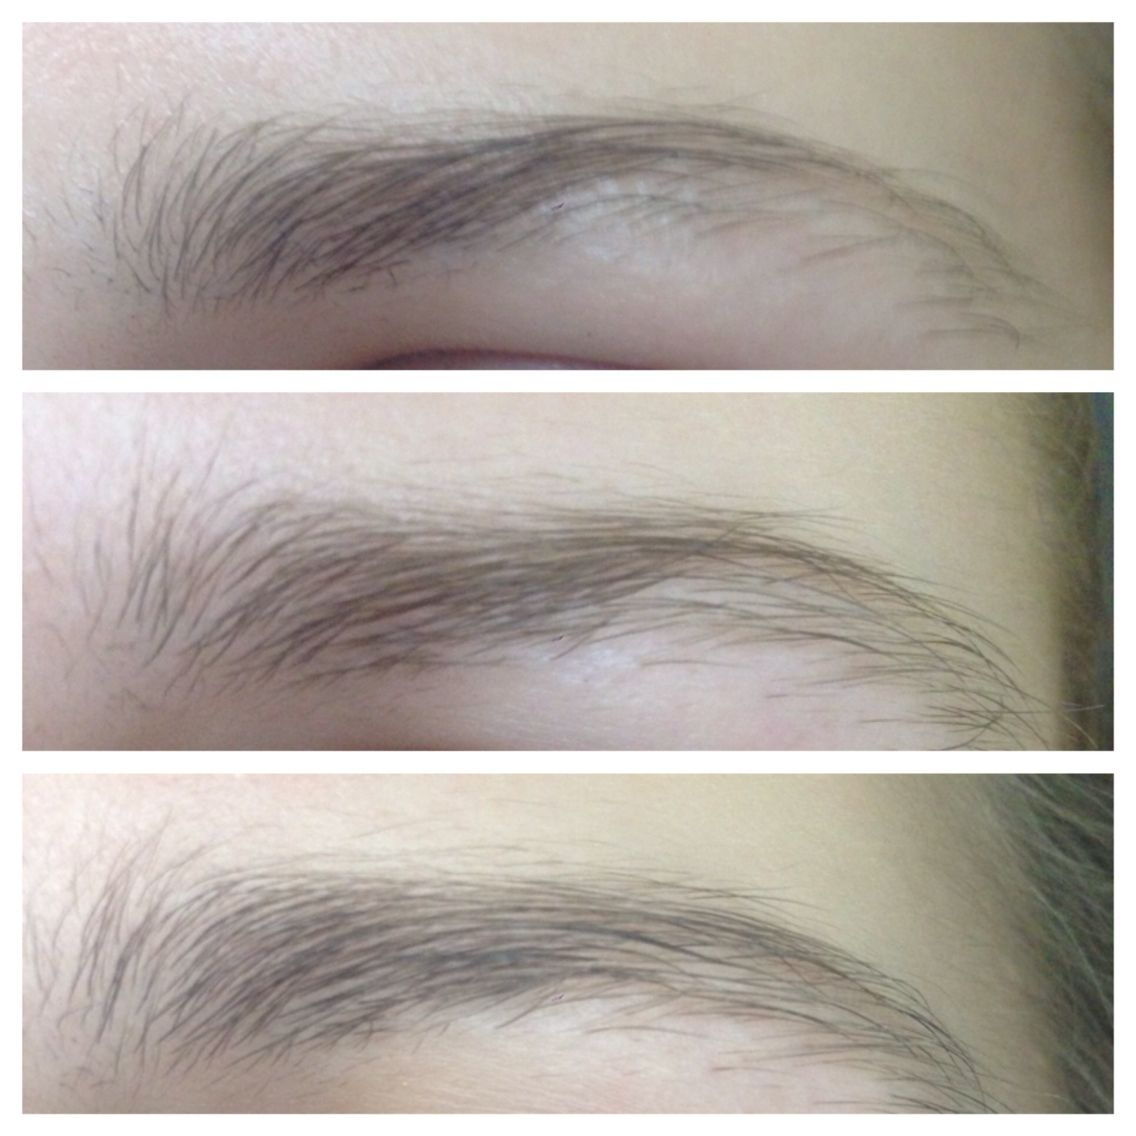 Eyebrow Growth 3 Weeks After Using Castor Oil Mixed With Vaseline